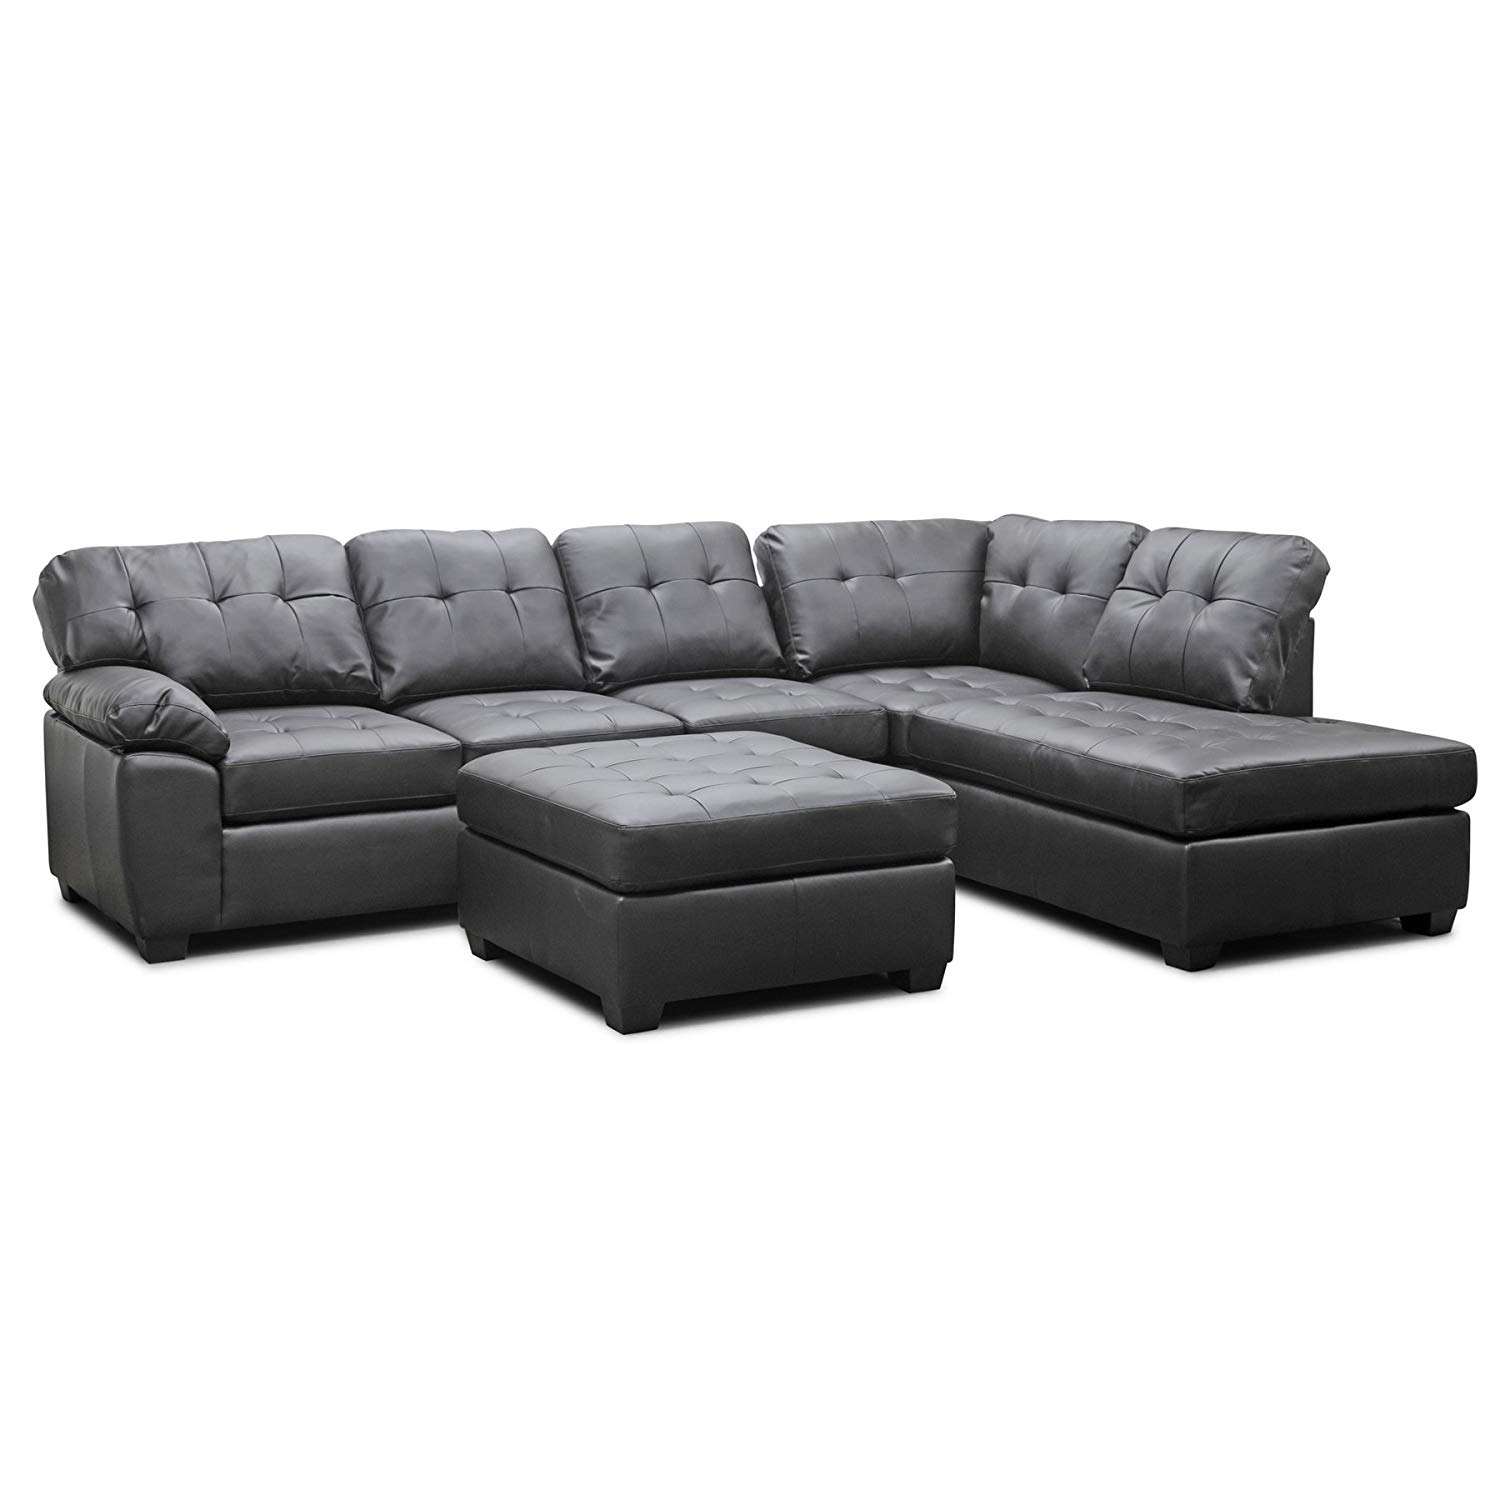 Grey Sectional Sofa With Ottoman Aspen Leather Reviews 3Pc Set Black with Aspen 2 Piece Sectionals With Raf Chaise (Image 18 of 30)